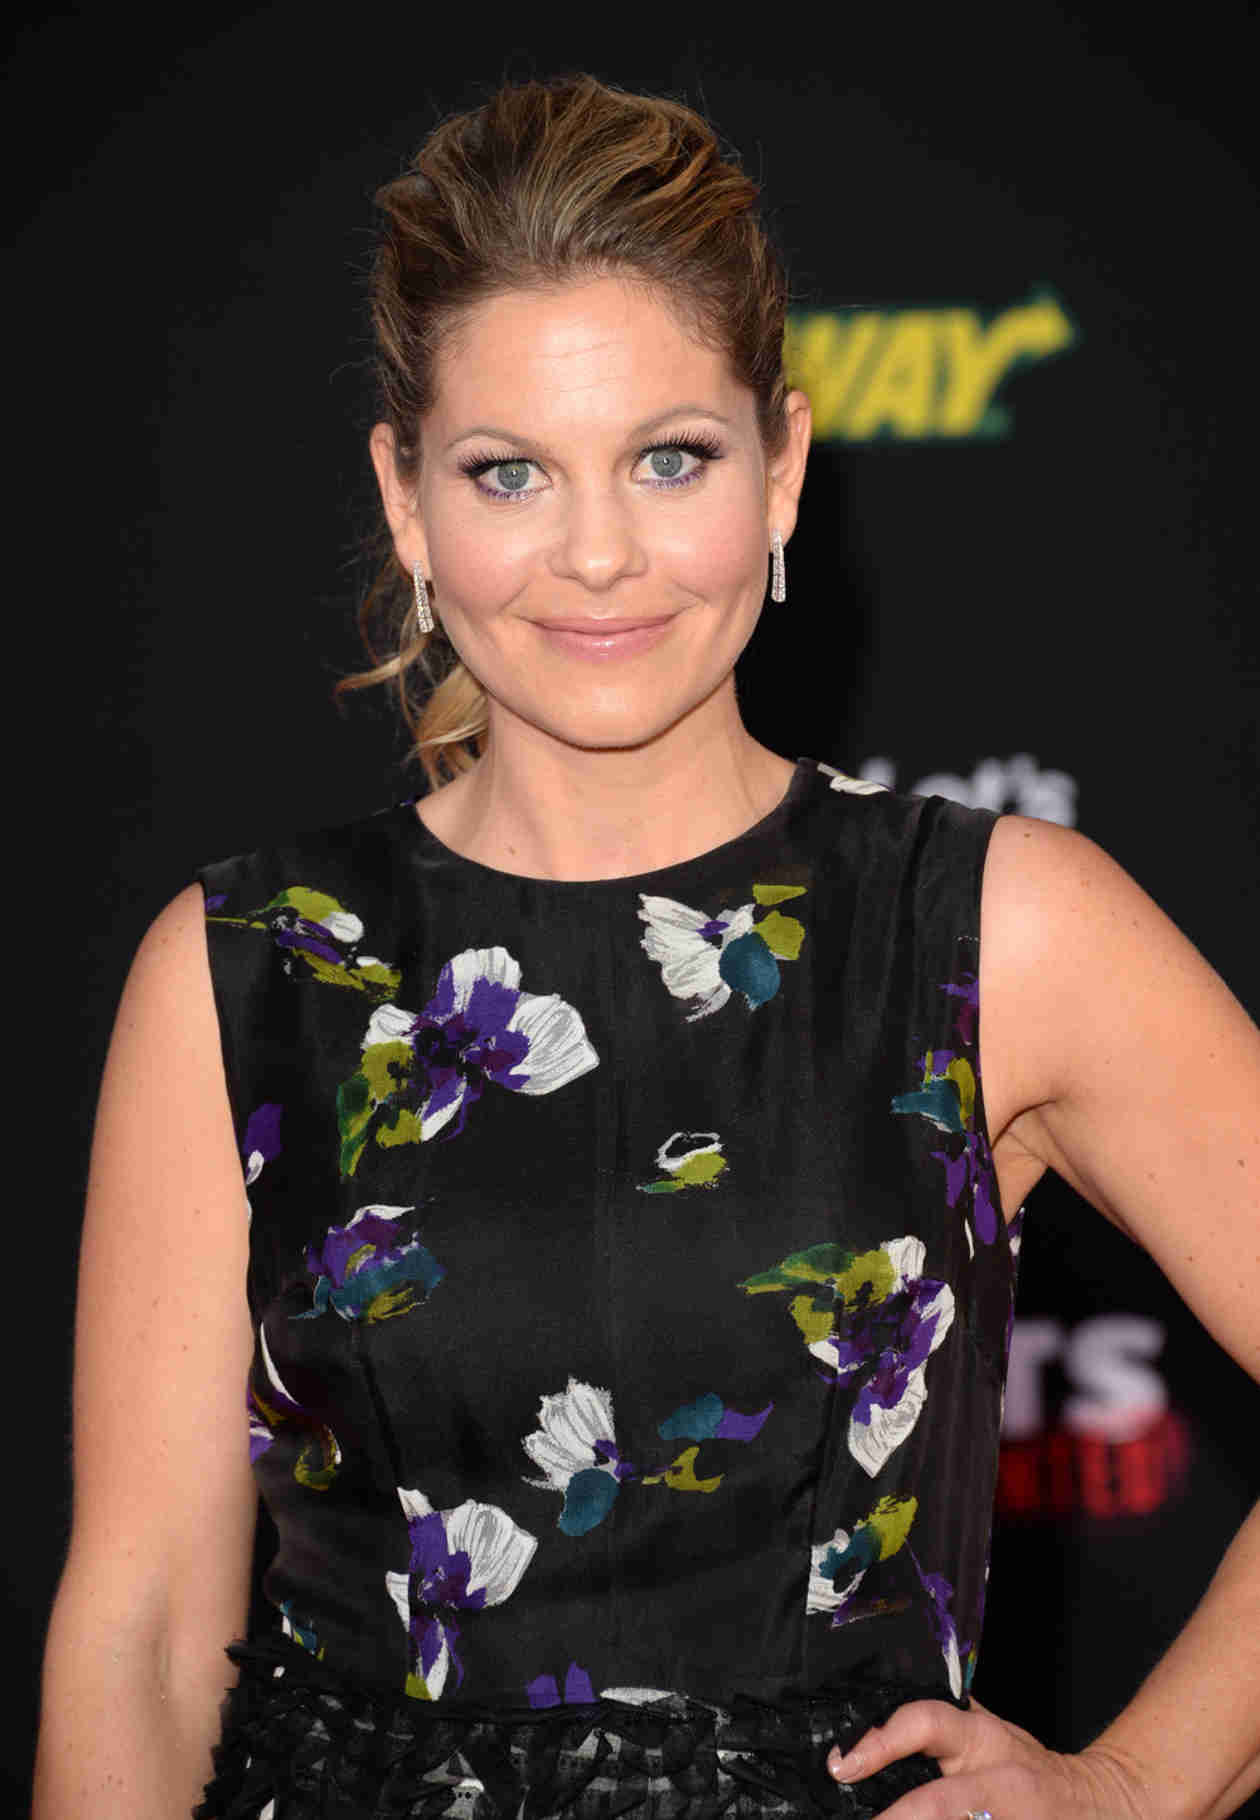 Candace Cameron Bure Rocks Two-Piece on Beach — See the Full House Star's Hot Bod! (PHOTO)